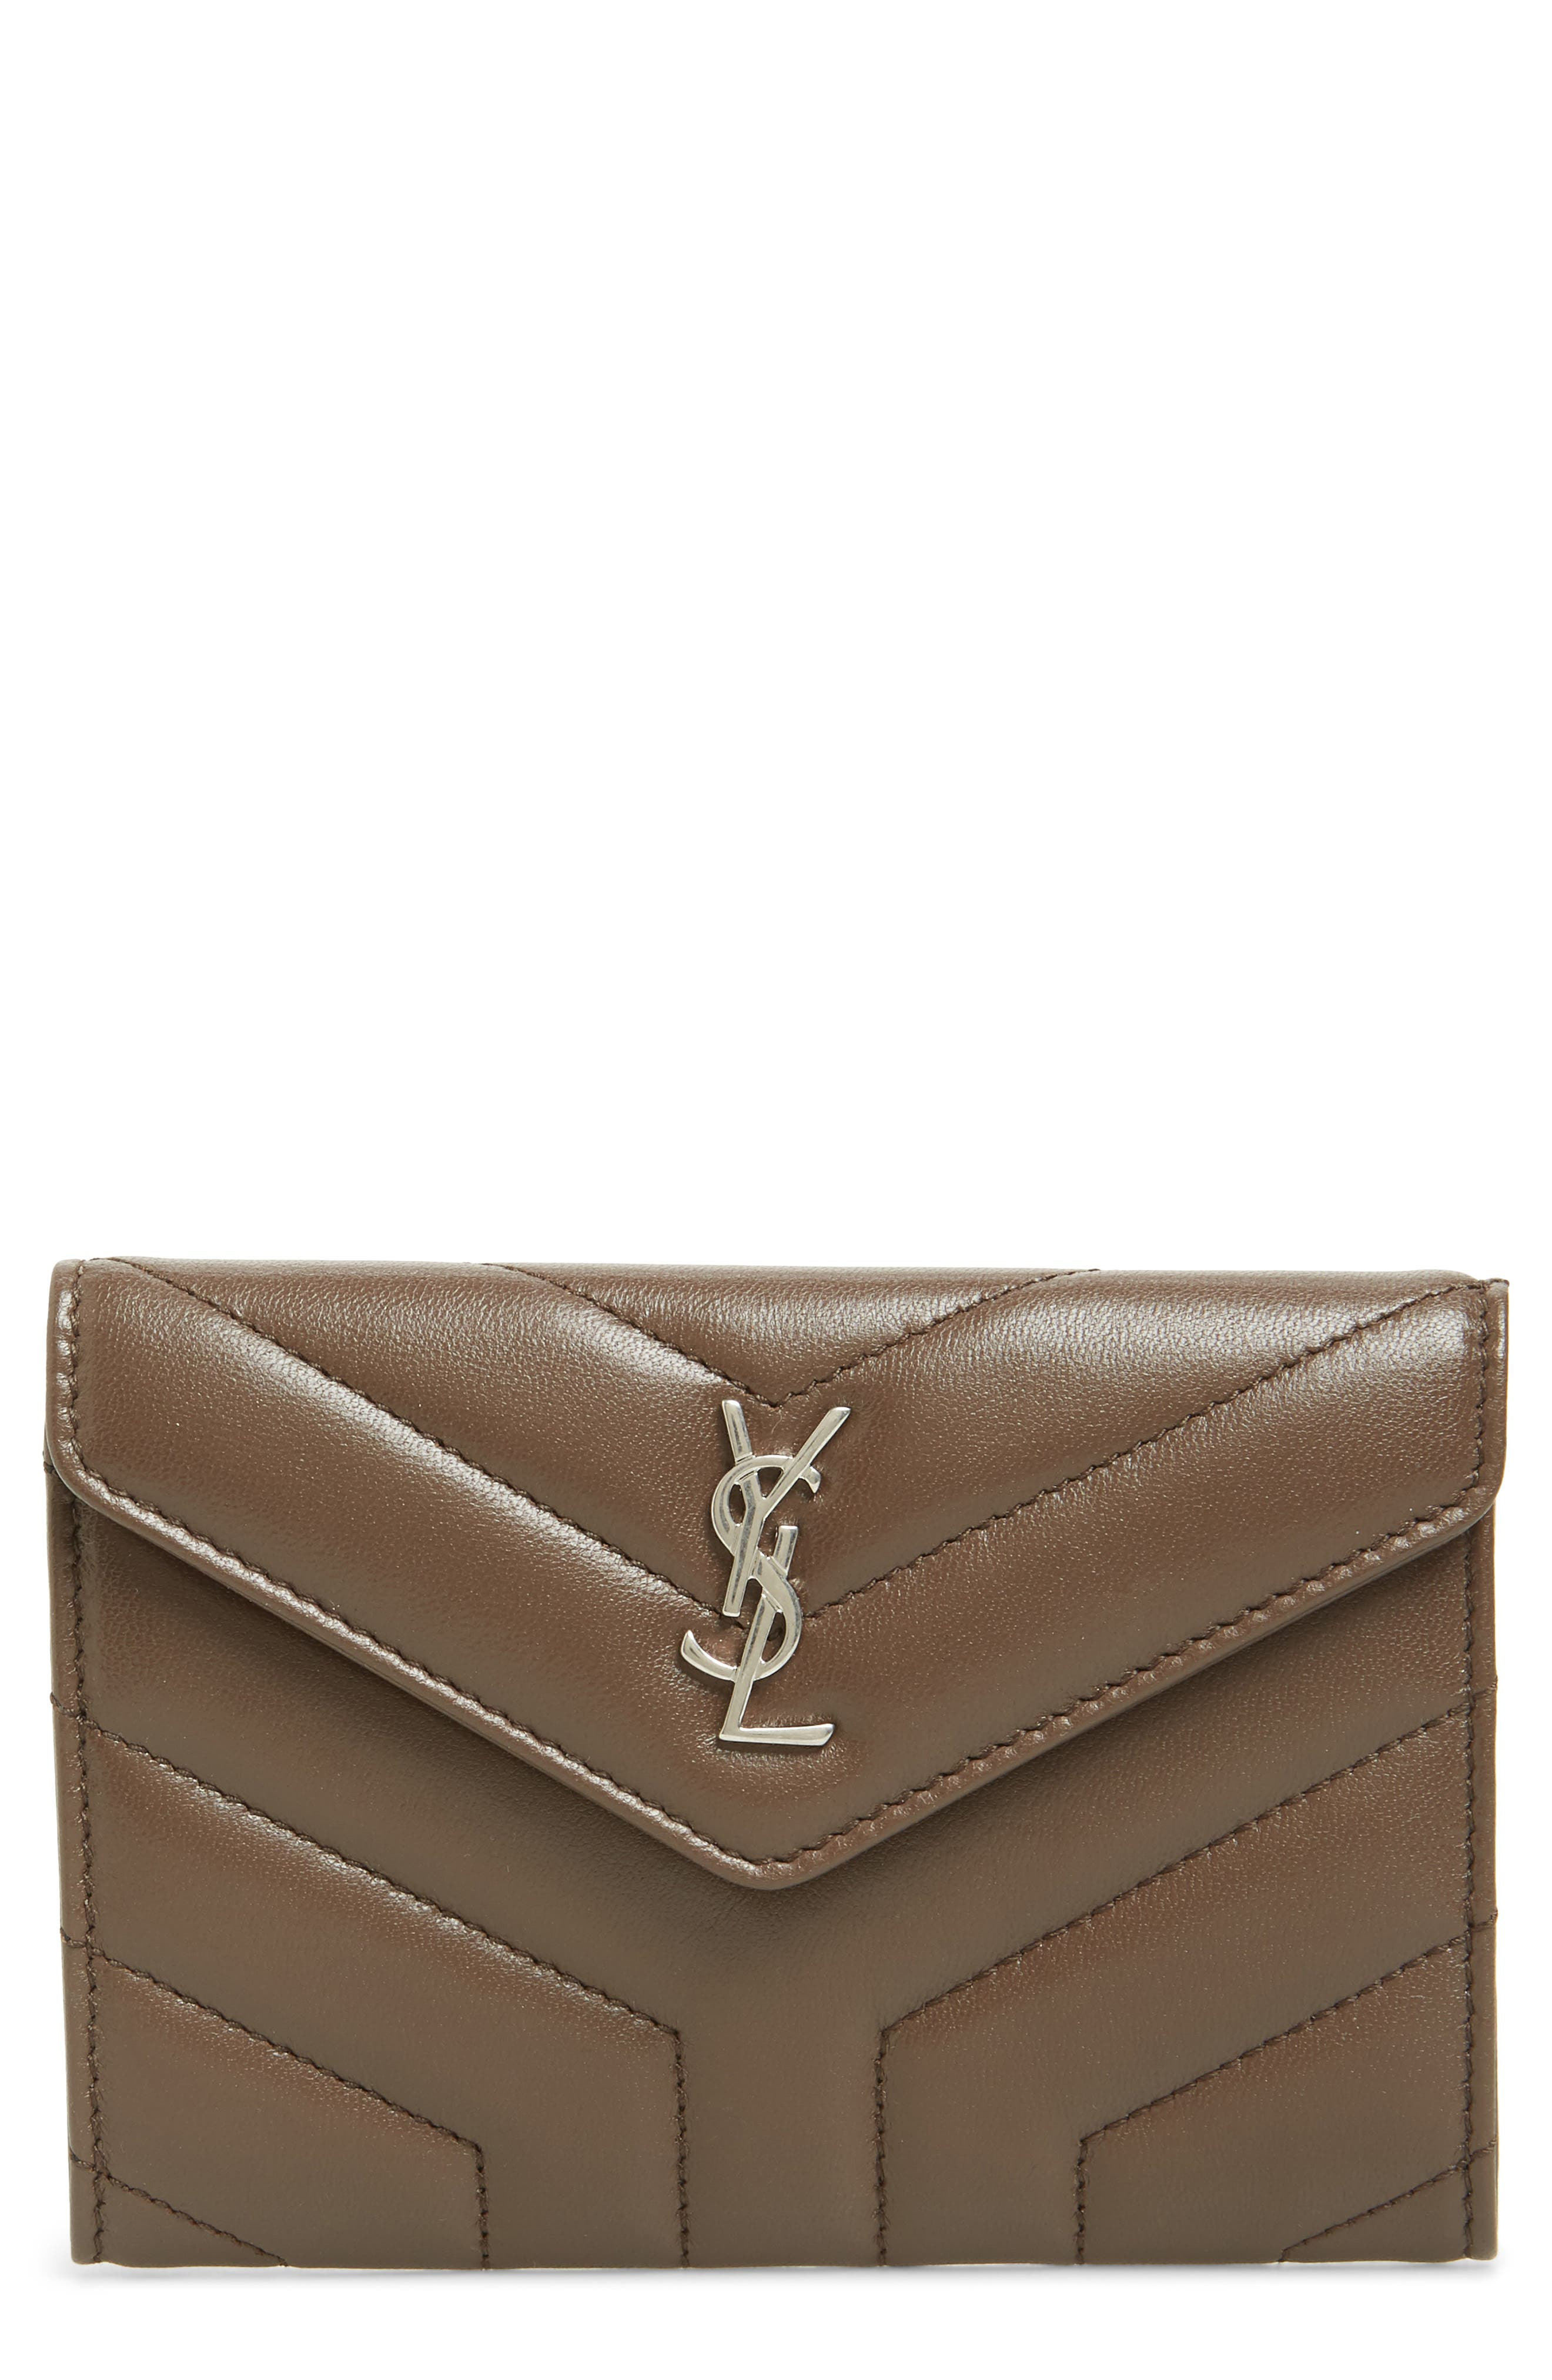 Small Loulou Matelassé Leather Wallet,                         Main,                         color, FAGGIO